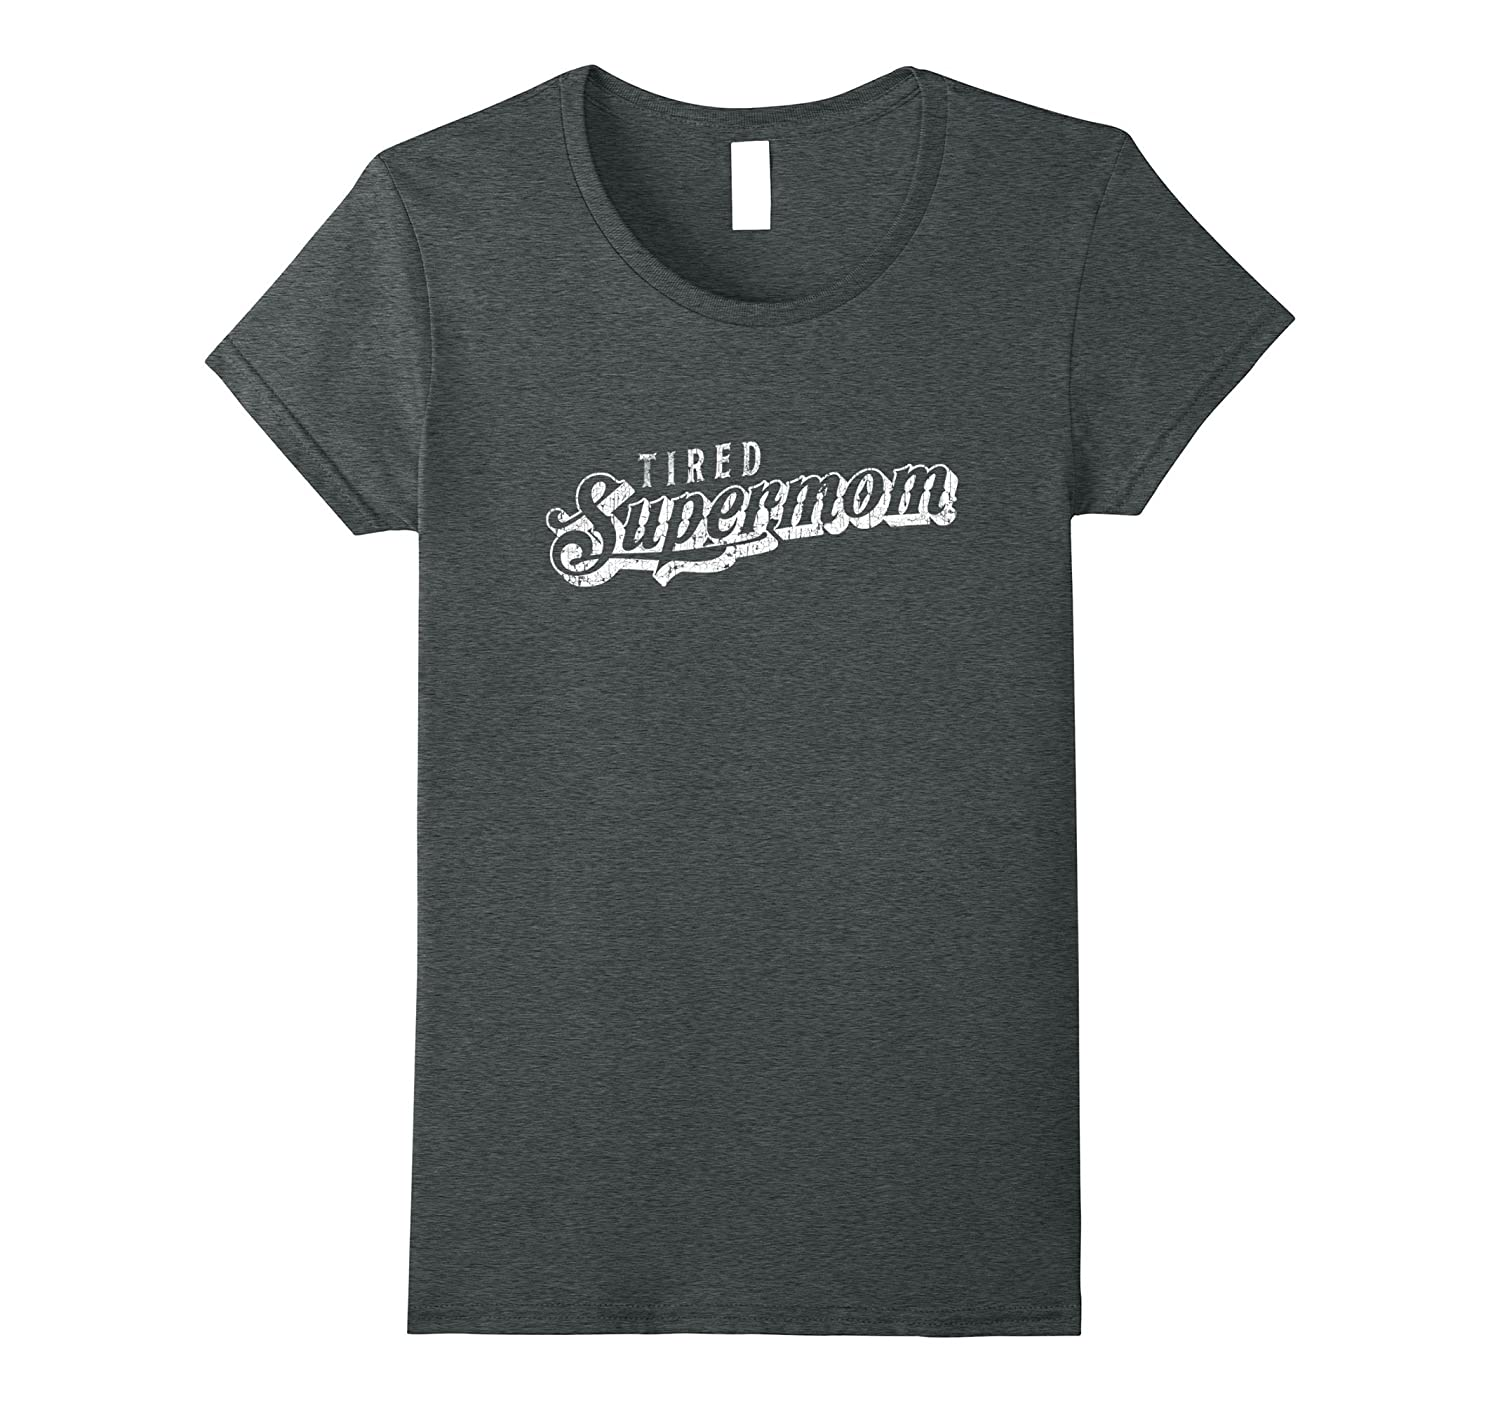 Tired Supermom T-Shirt Tee Perfect Mom Mum Distressed Gift